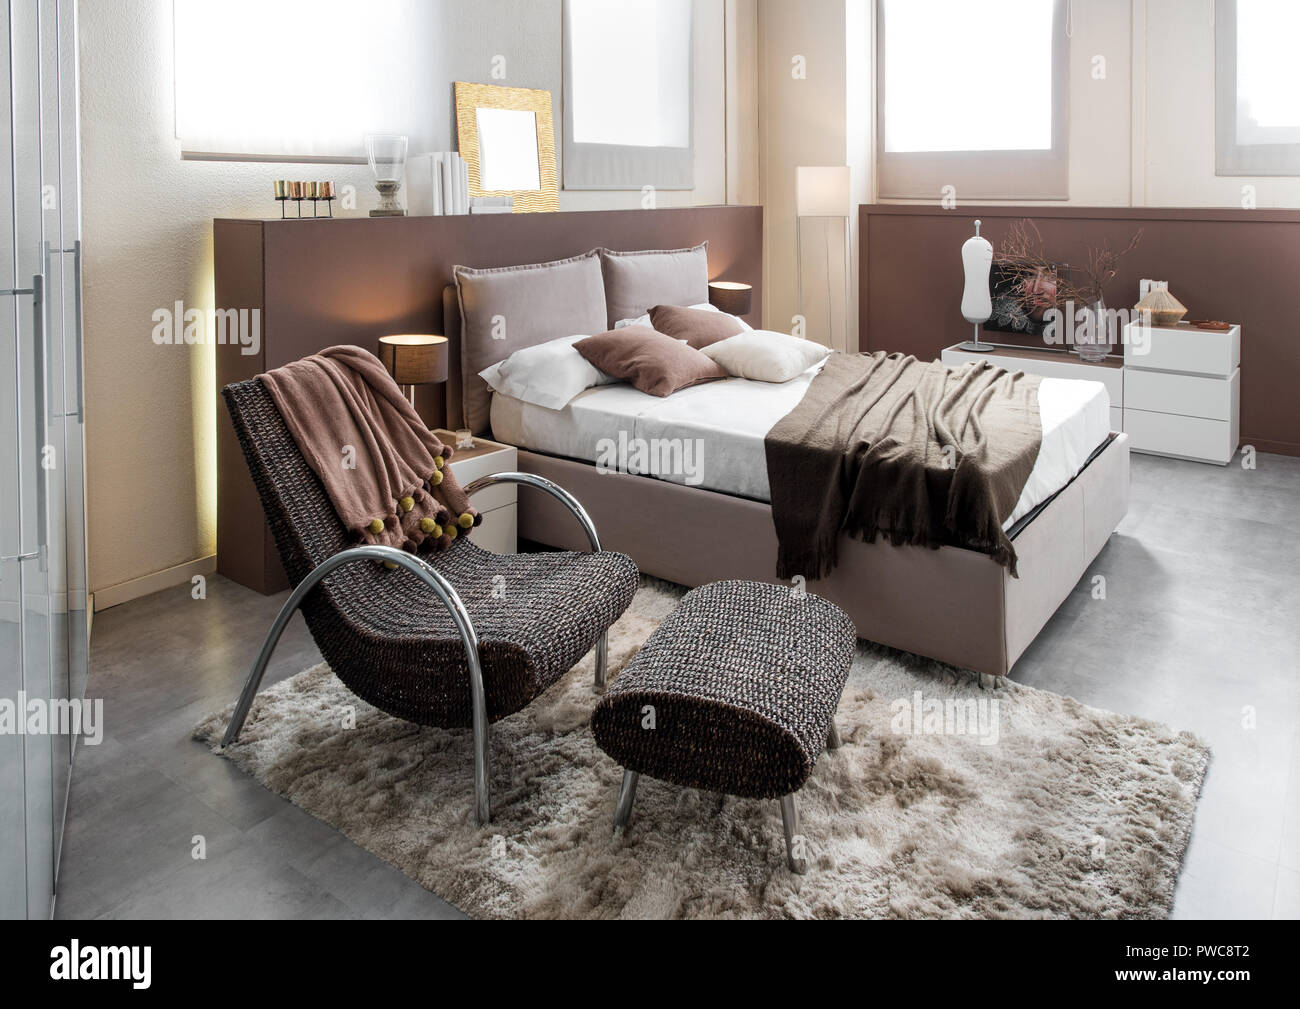 recliner chair bed wicker patio set of 2 modern luxury bedroom with and double large headboard cabinets in brown decor